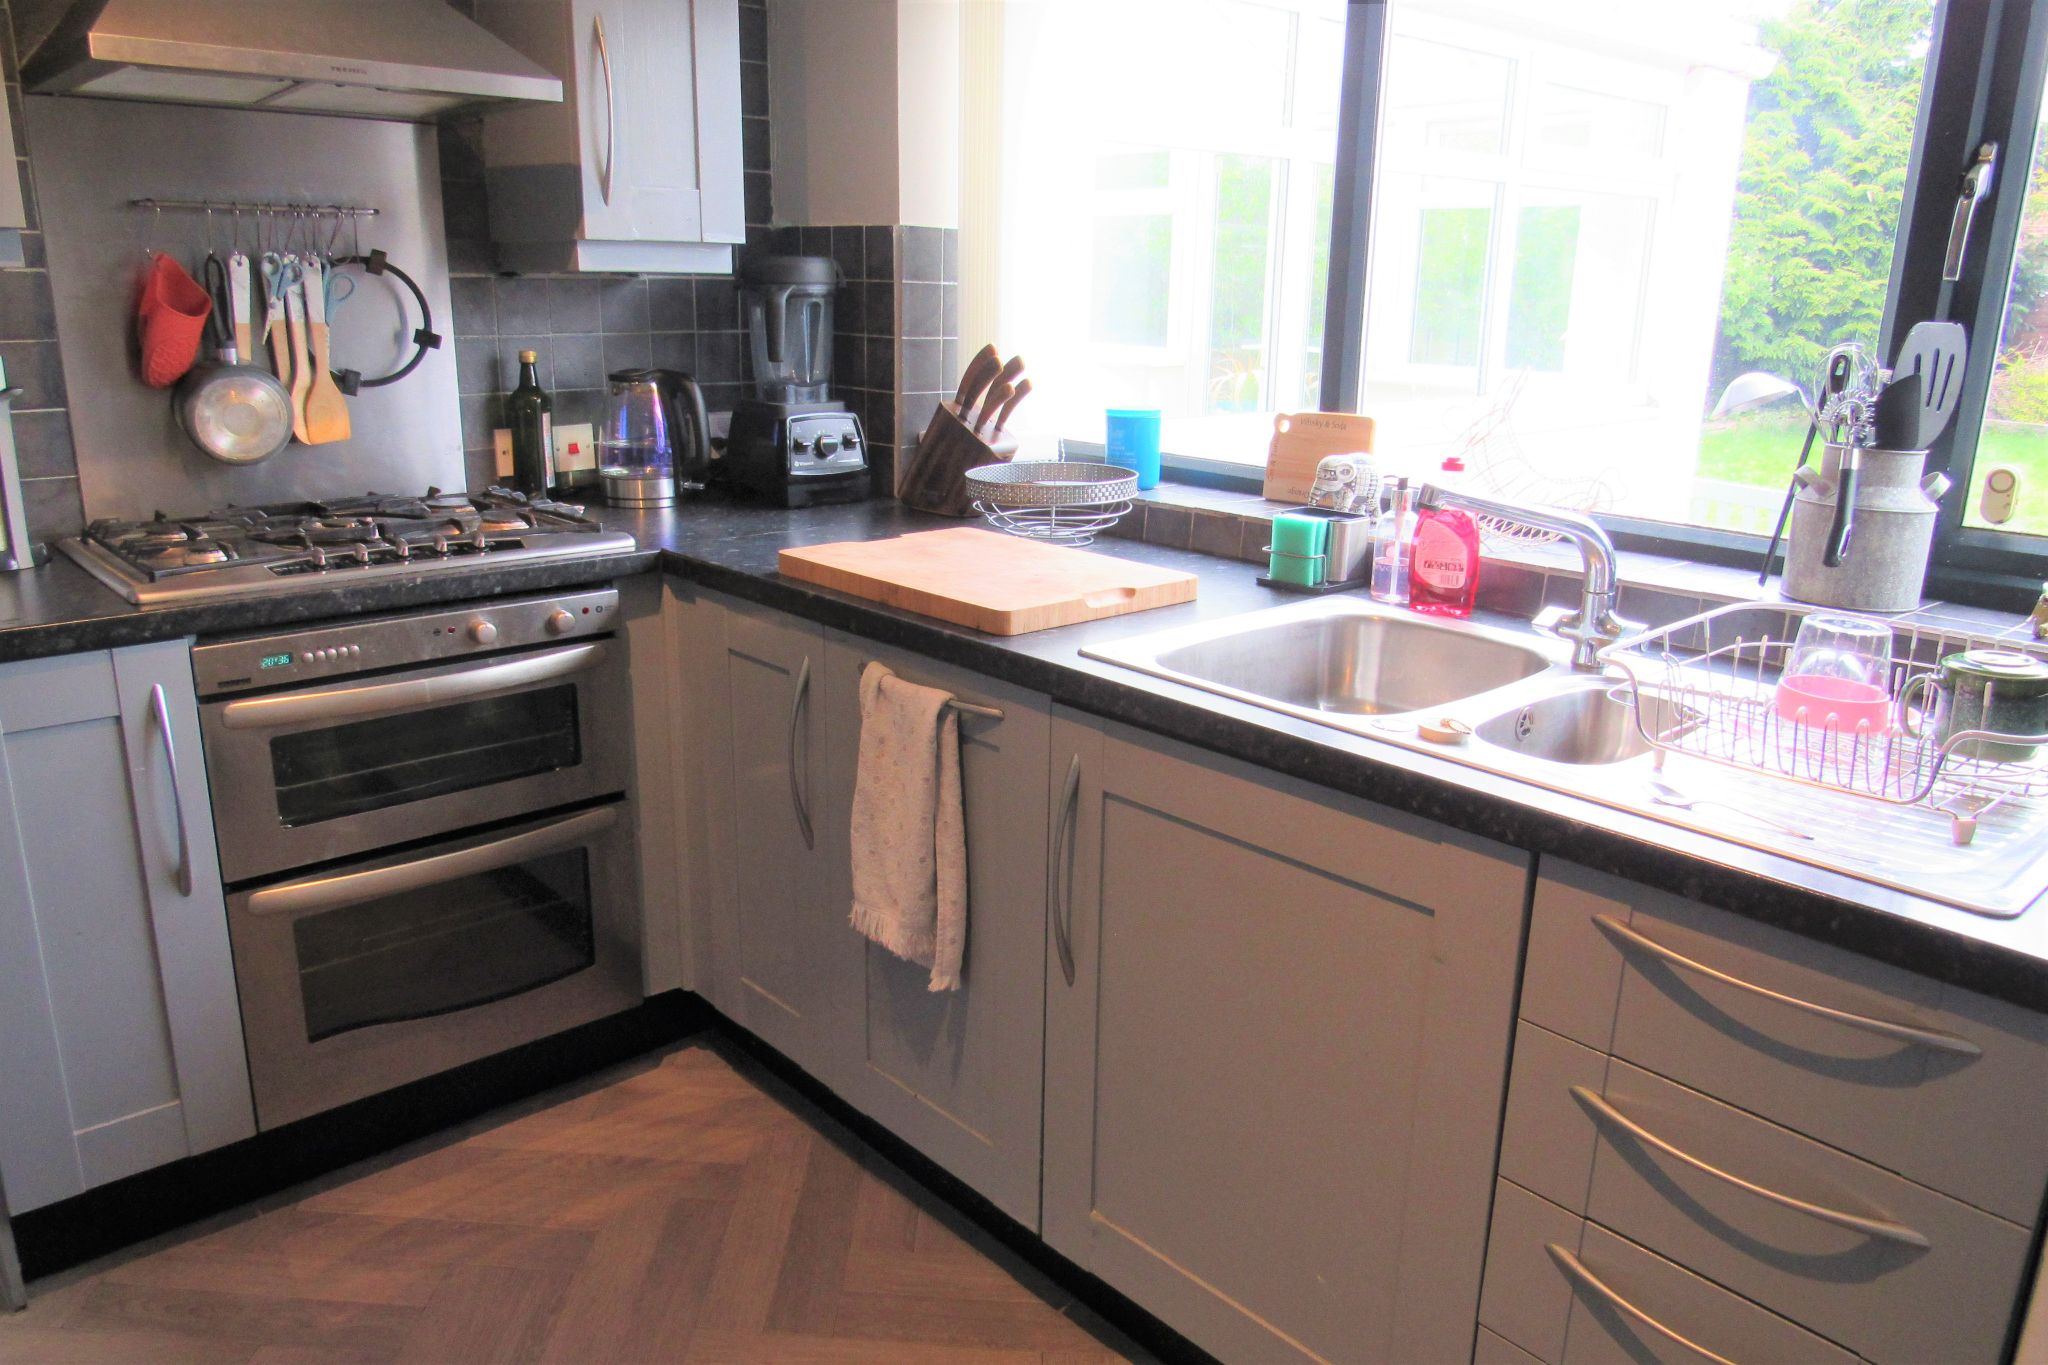 3 bedroom detached house For Sale in Manchester - Photograph 10.